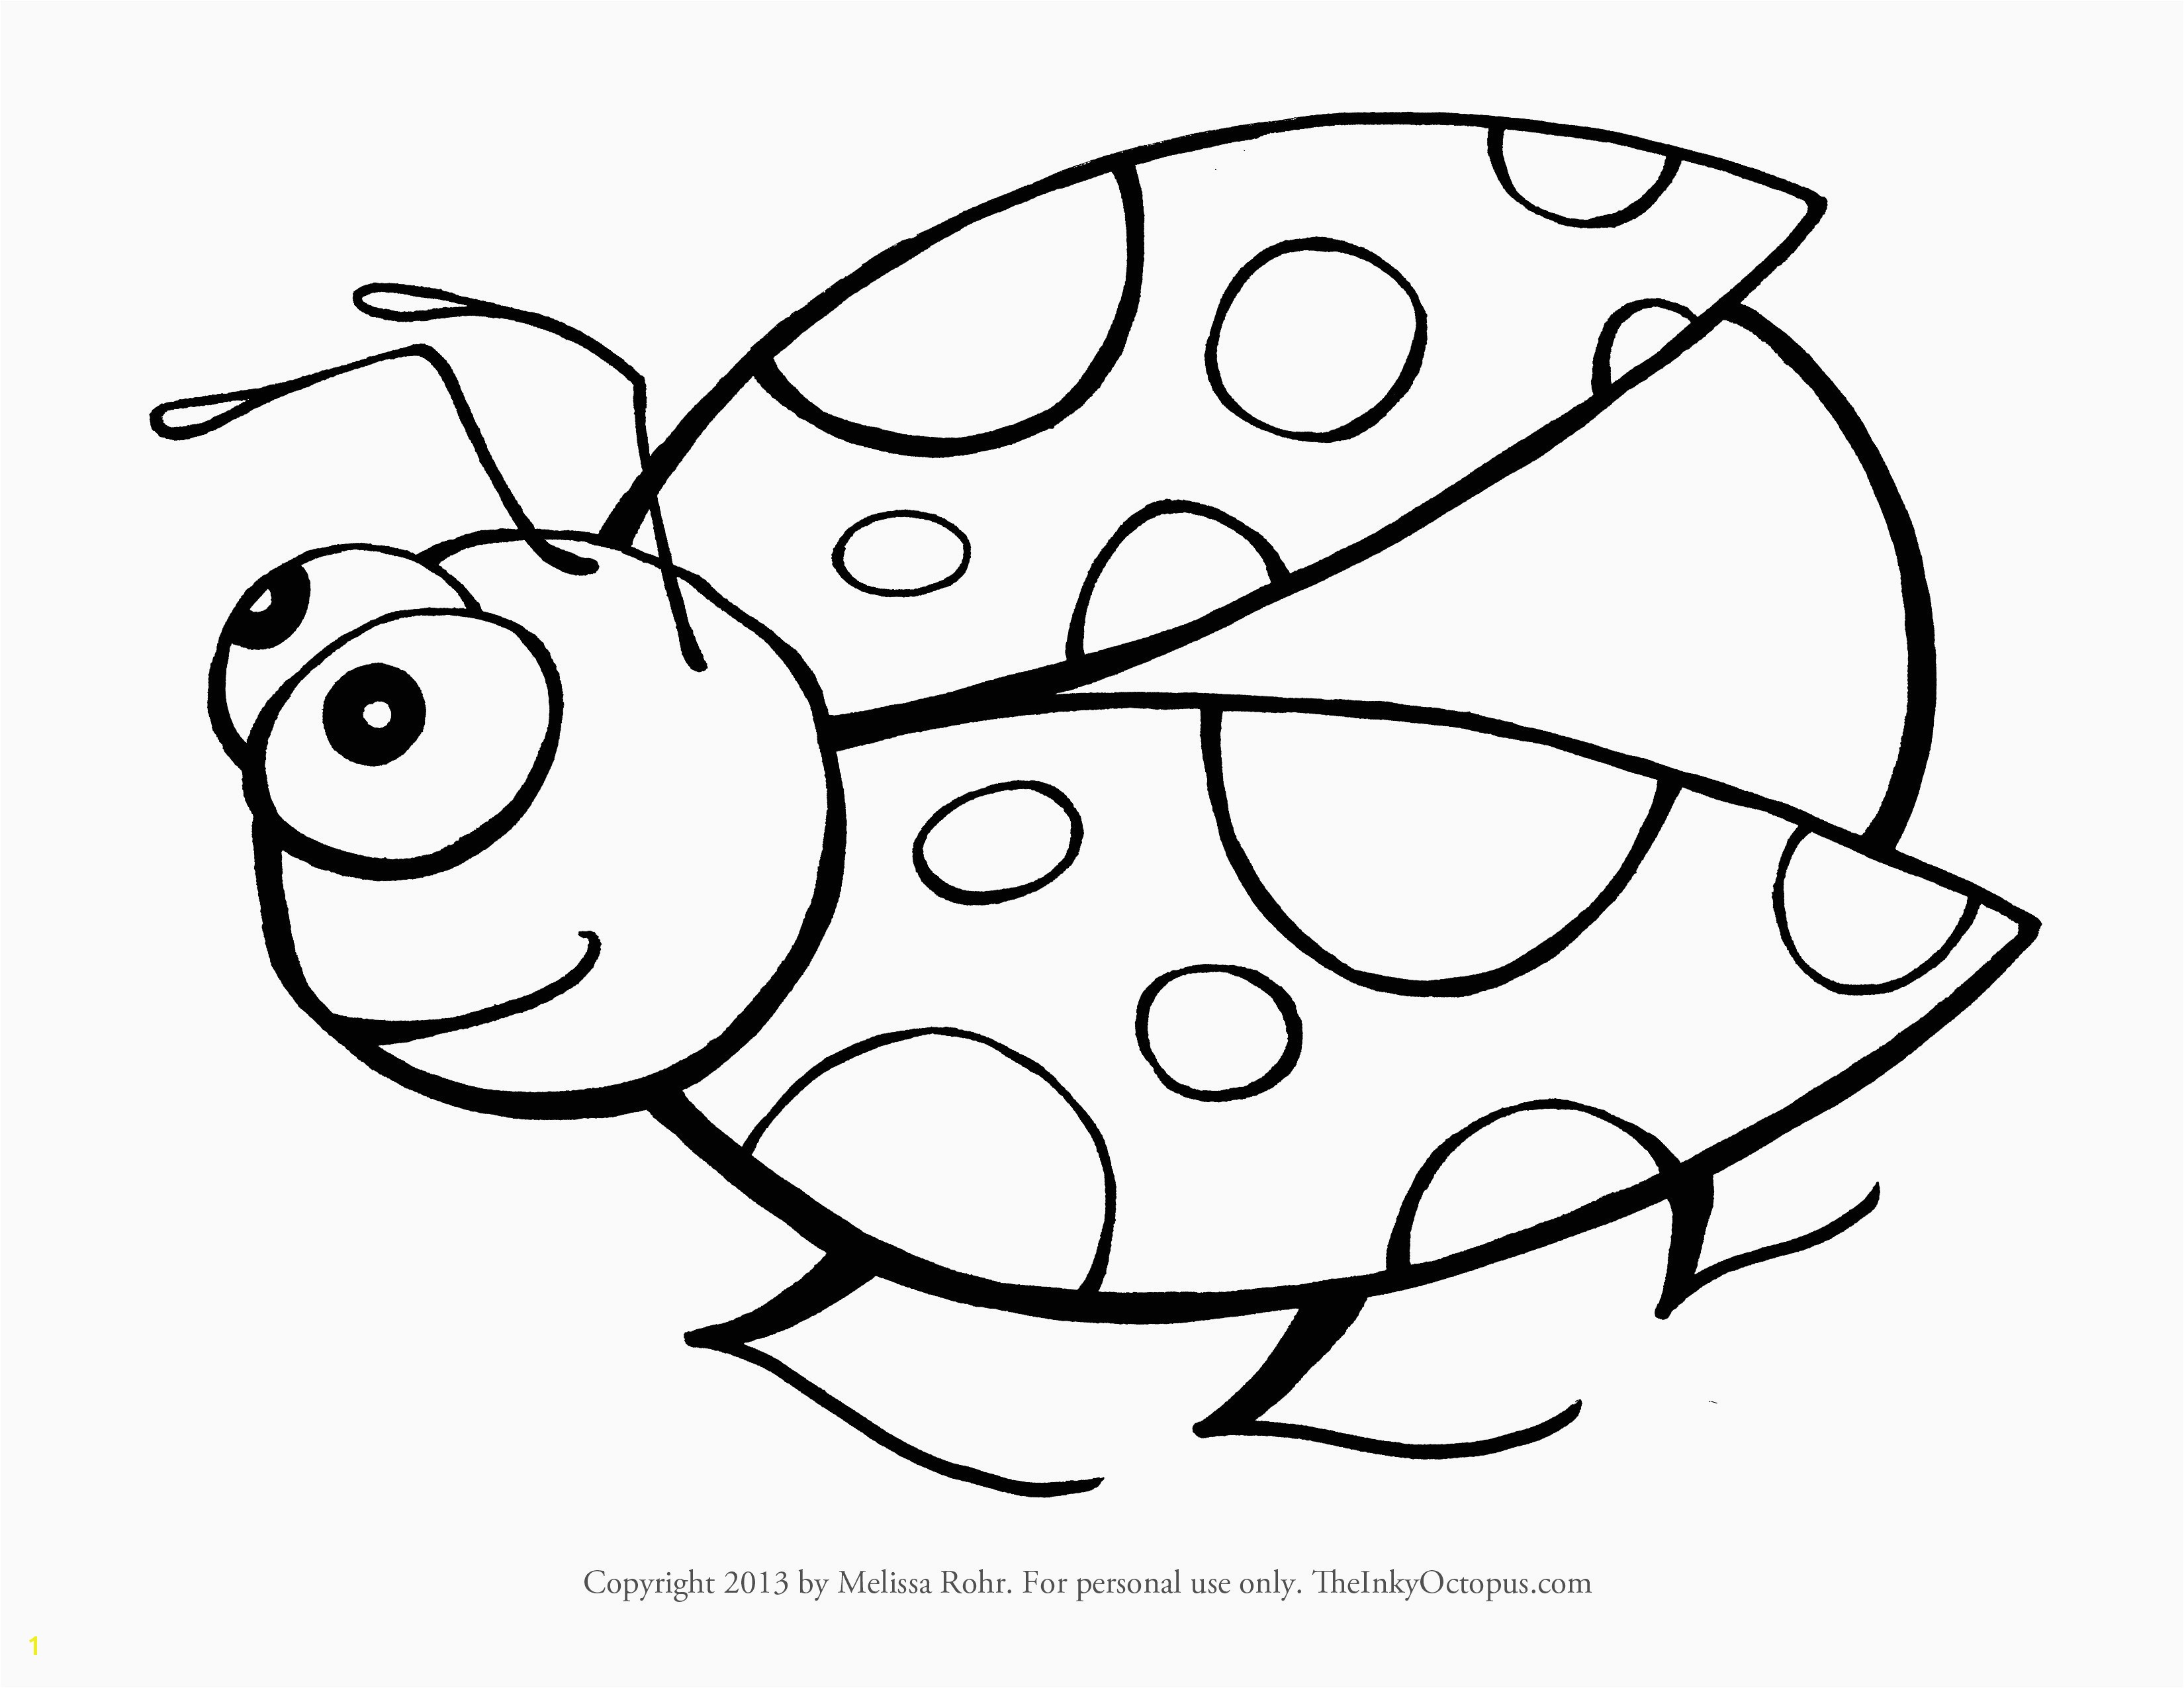 Lady Bug Coloring Pages Ladybug Coloring Page Ladybug Coloring Pages Cool Coloring Pages